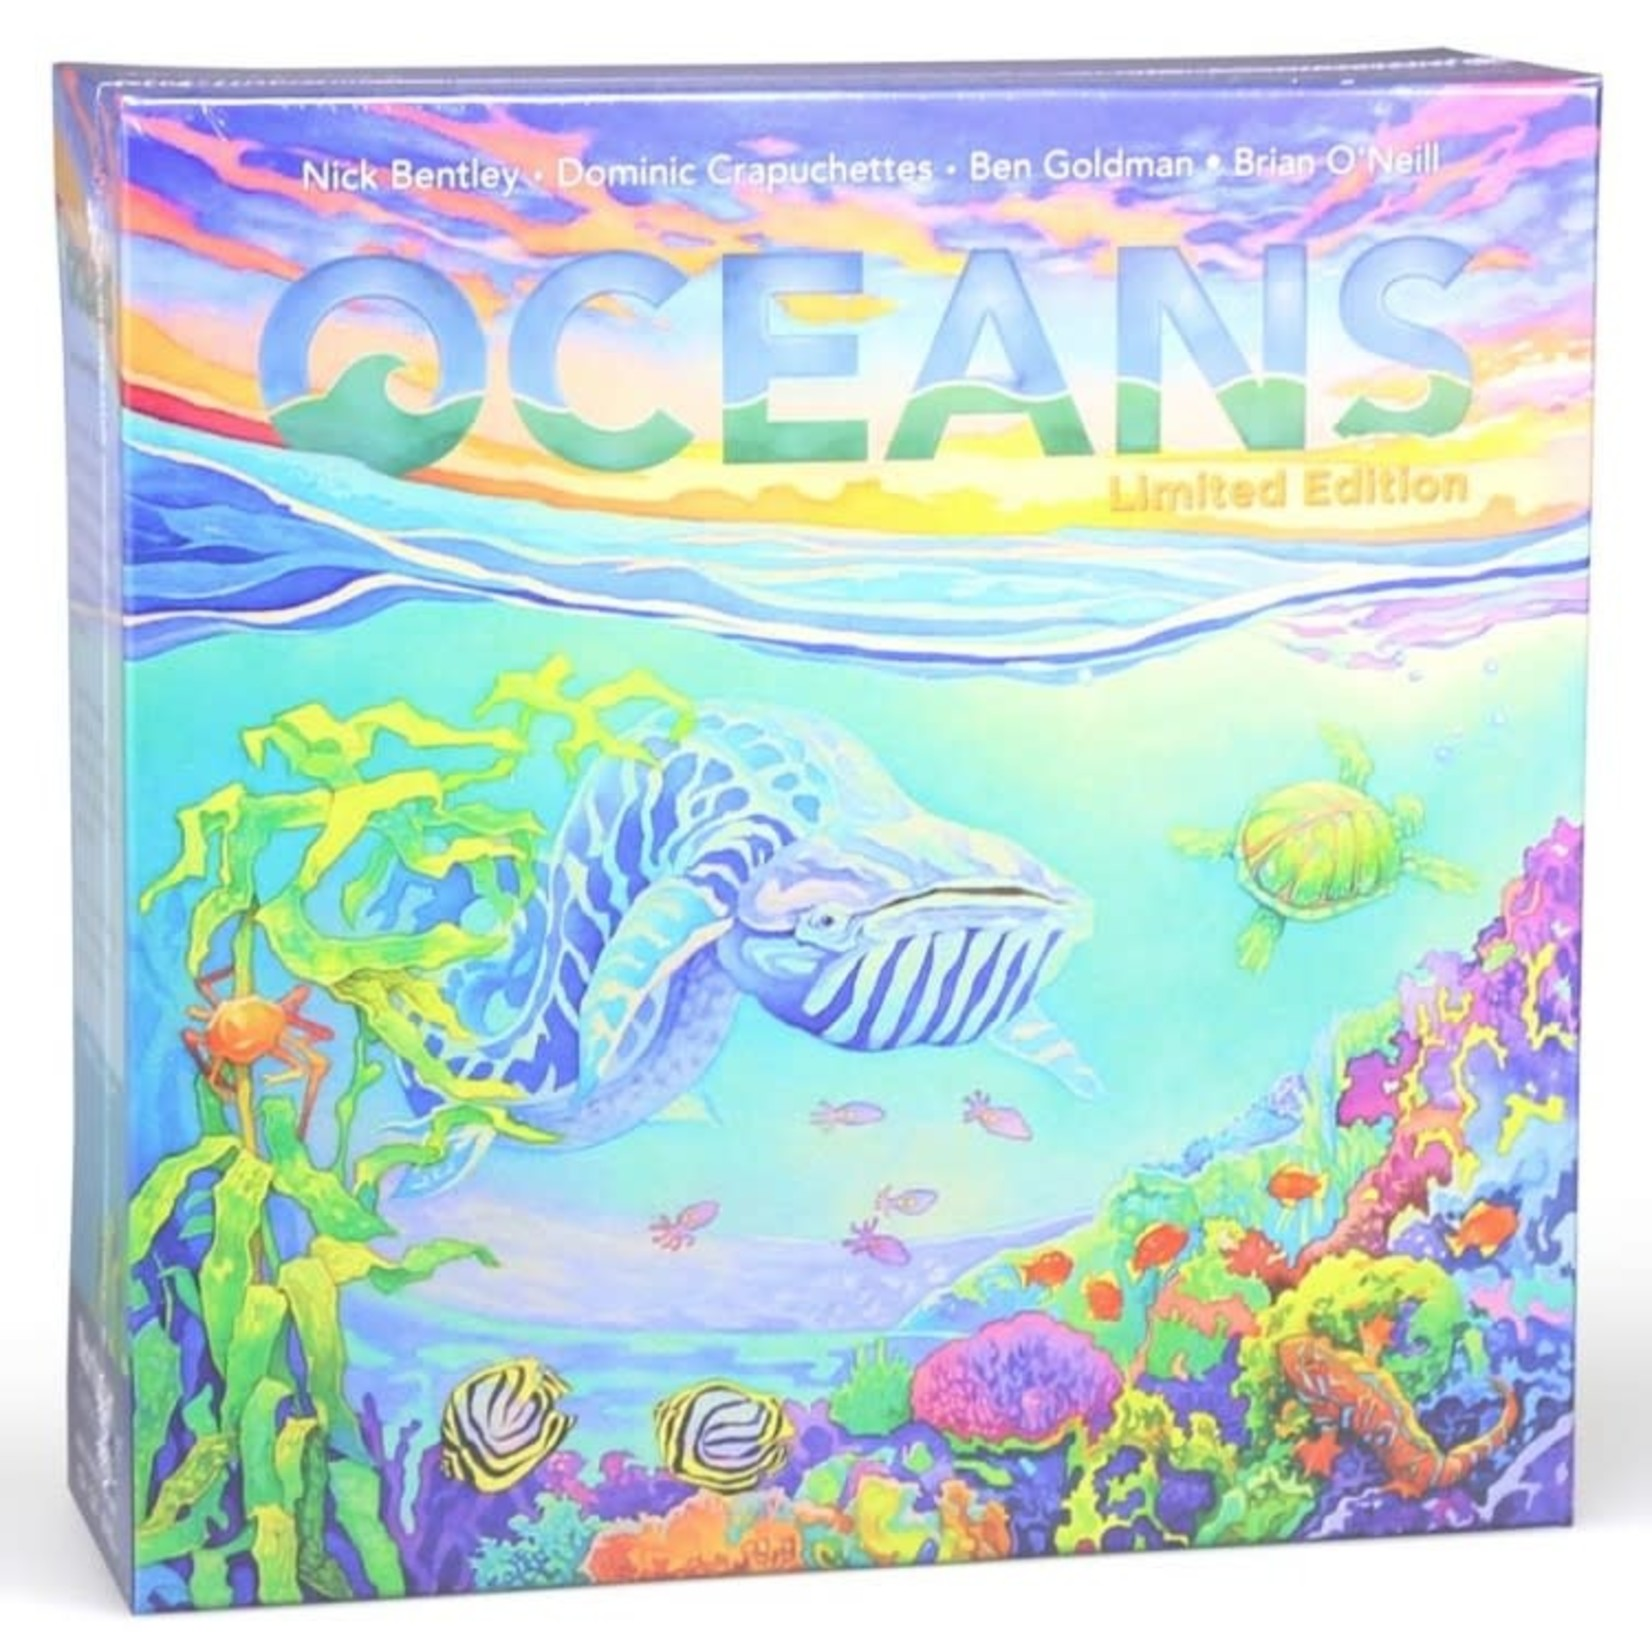 North Star Evolution: Oceans (Limited Edition)